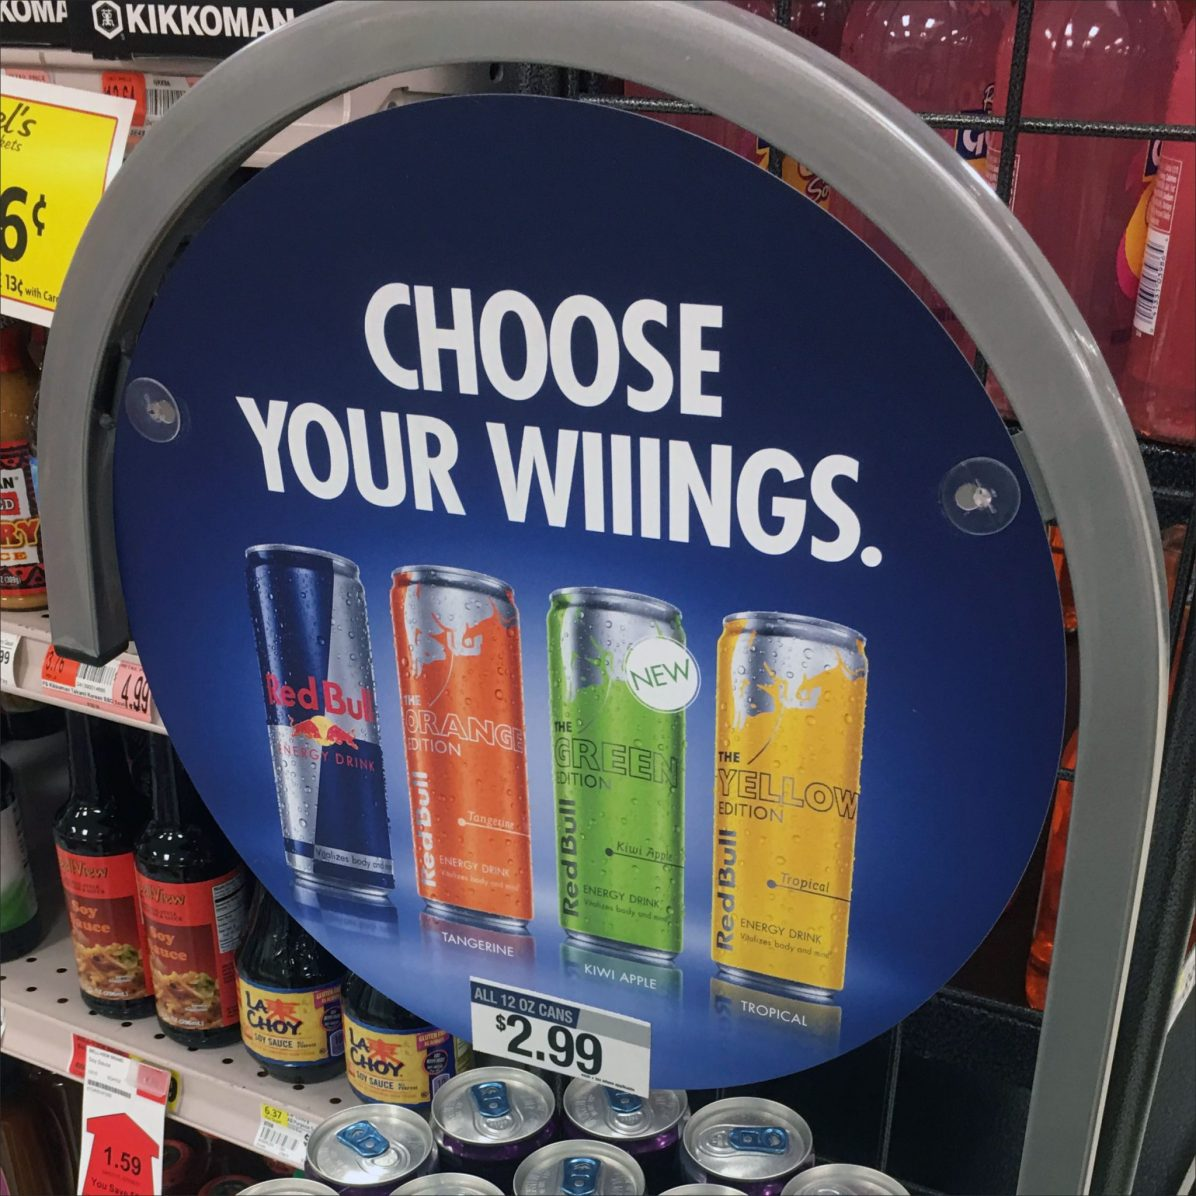 Redbull Wings Multi-Flavor Circular Tower